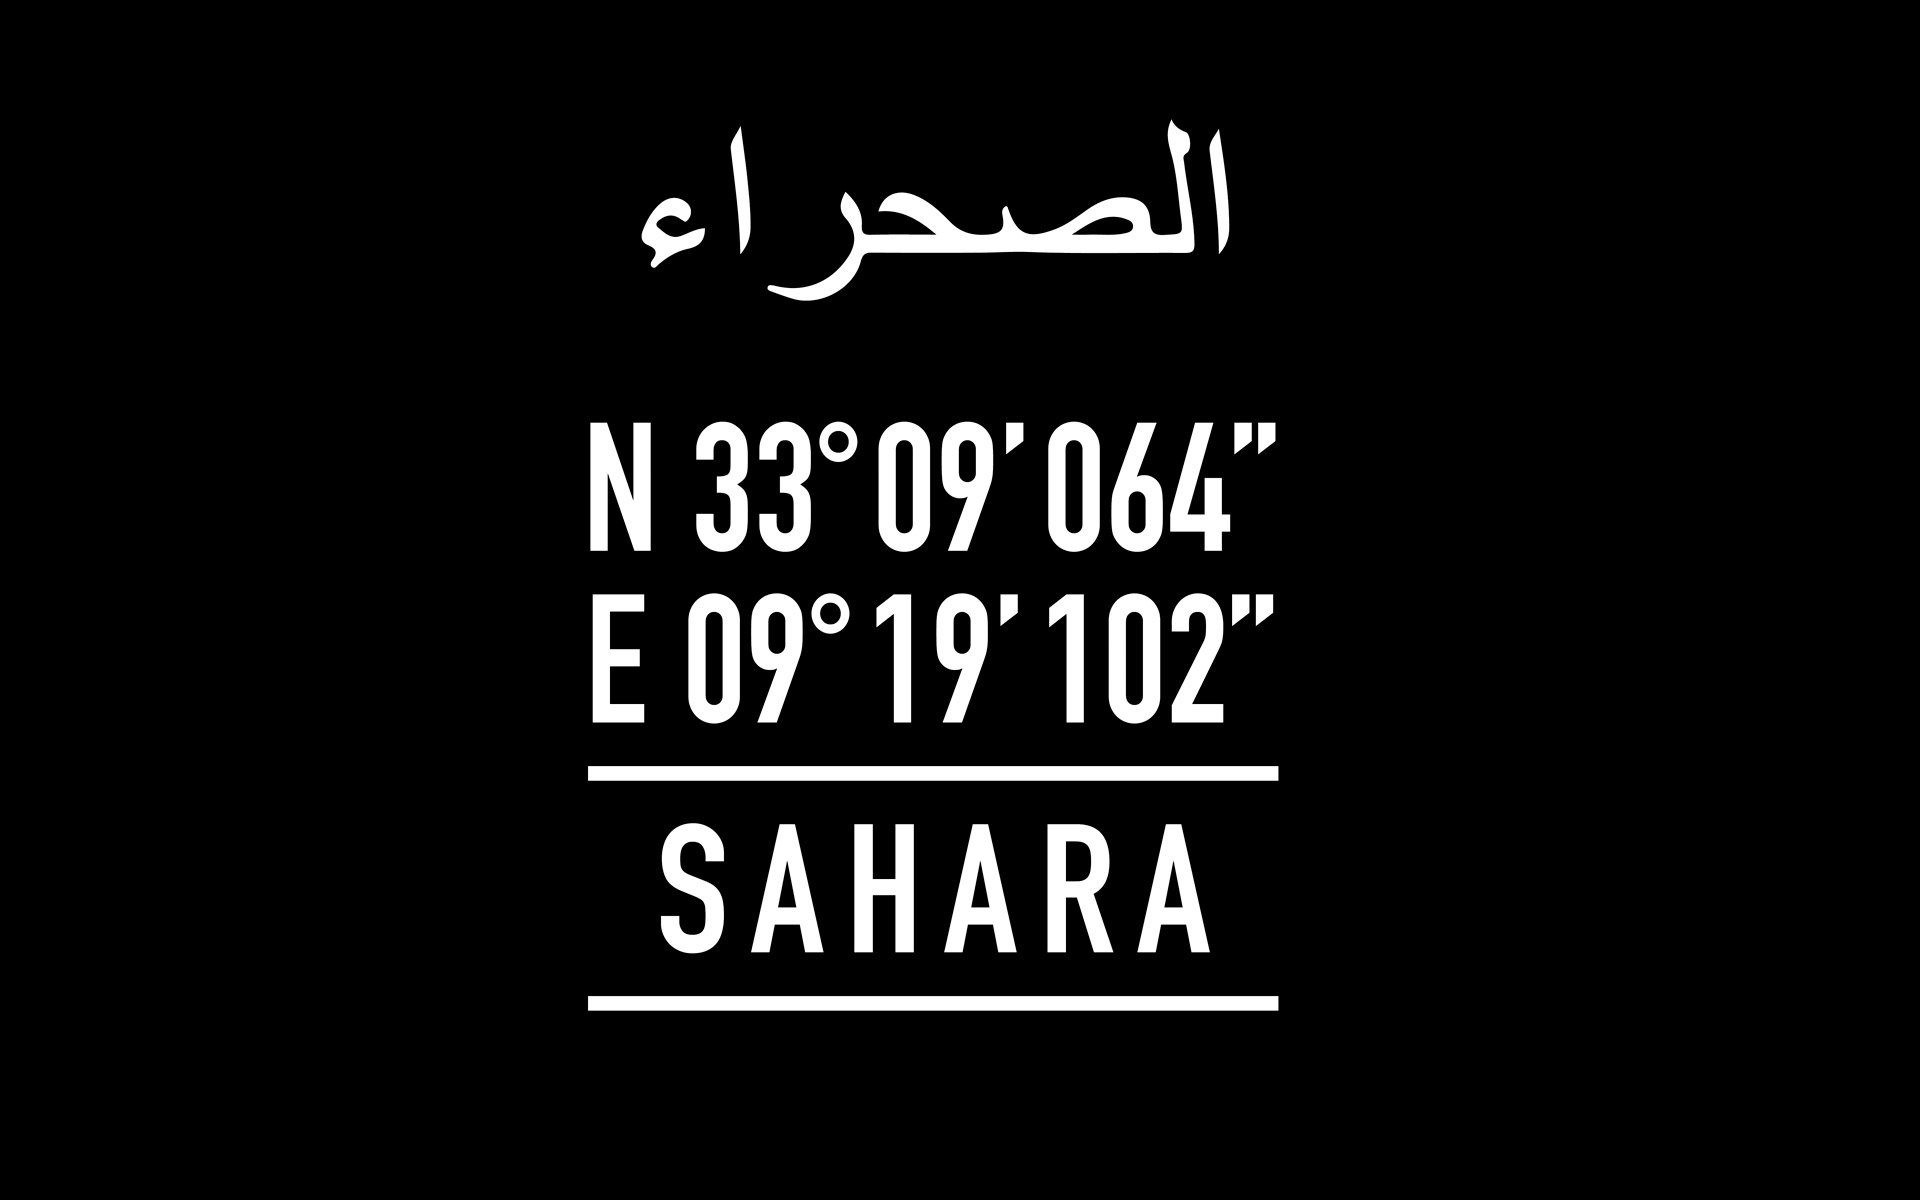 From North Cape to Sahara